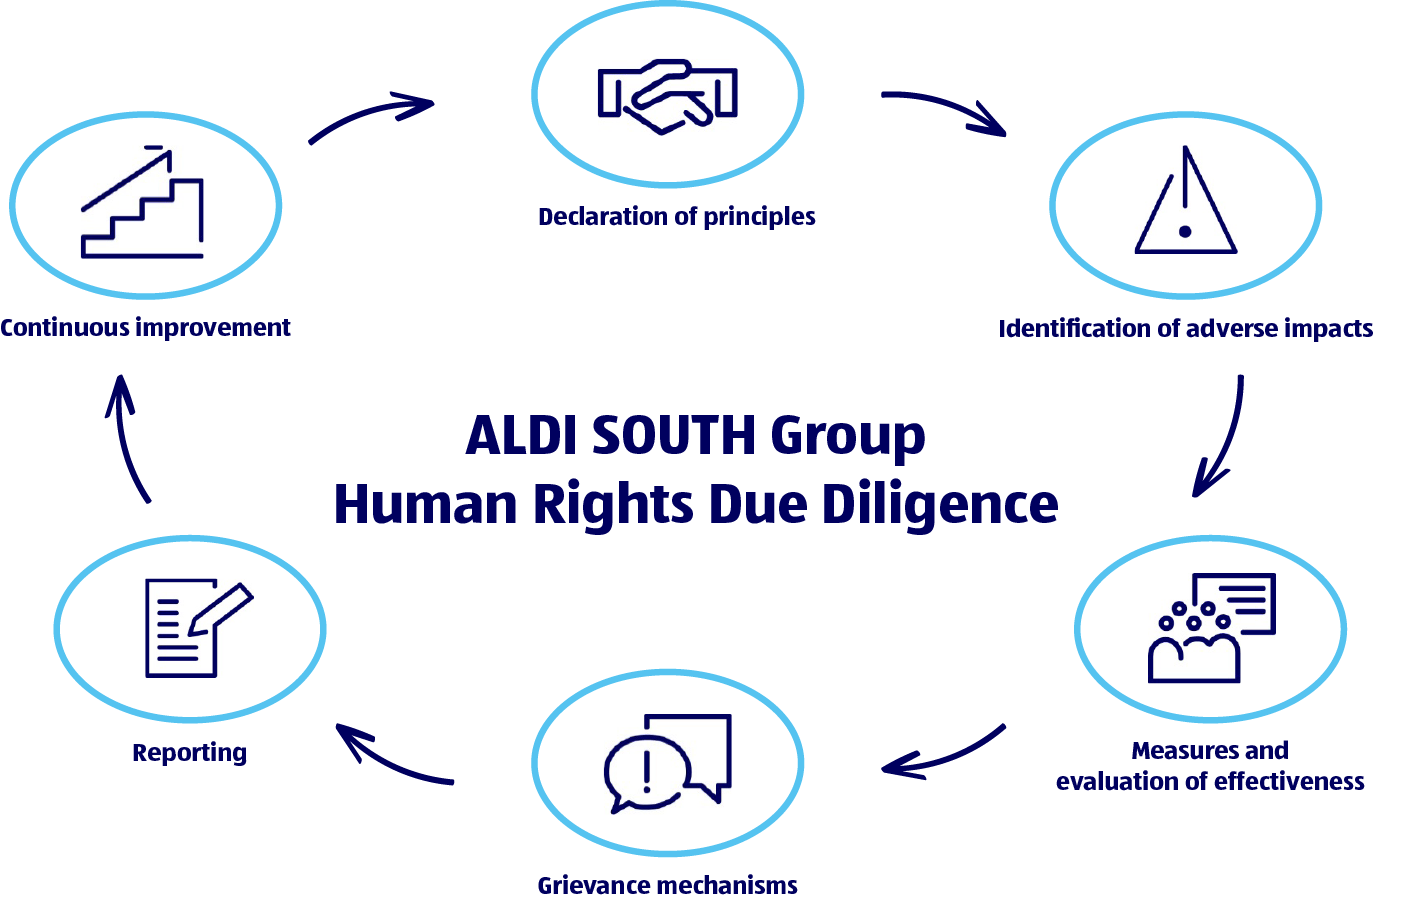 Human rights due diligence of the ALDI SOUTH Group